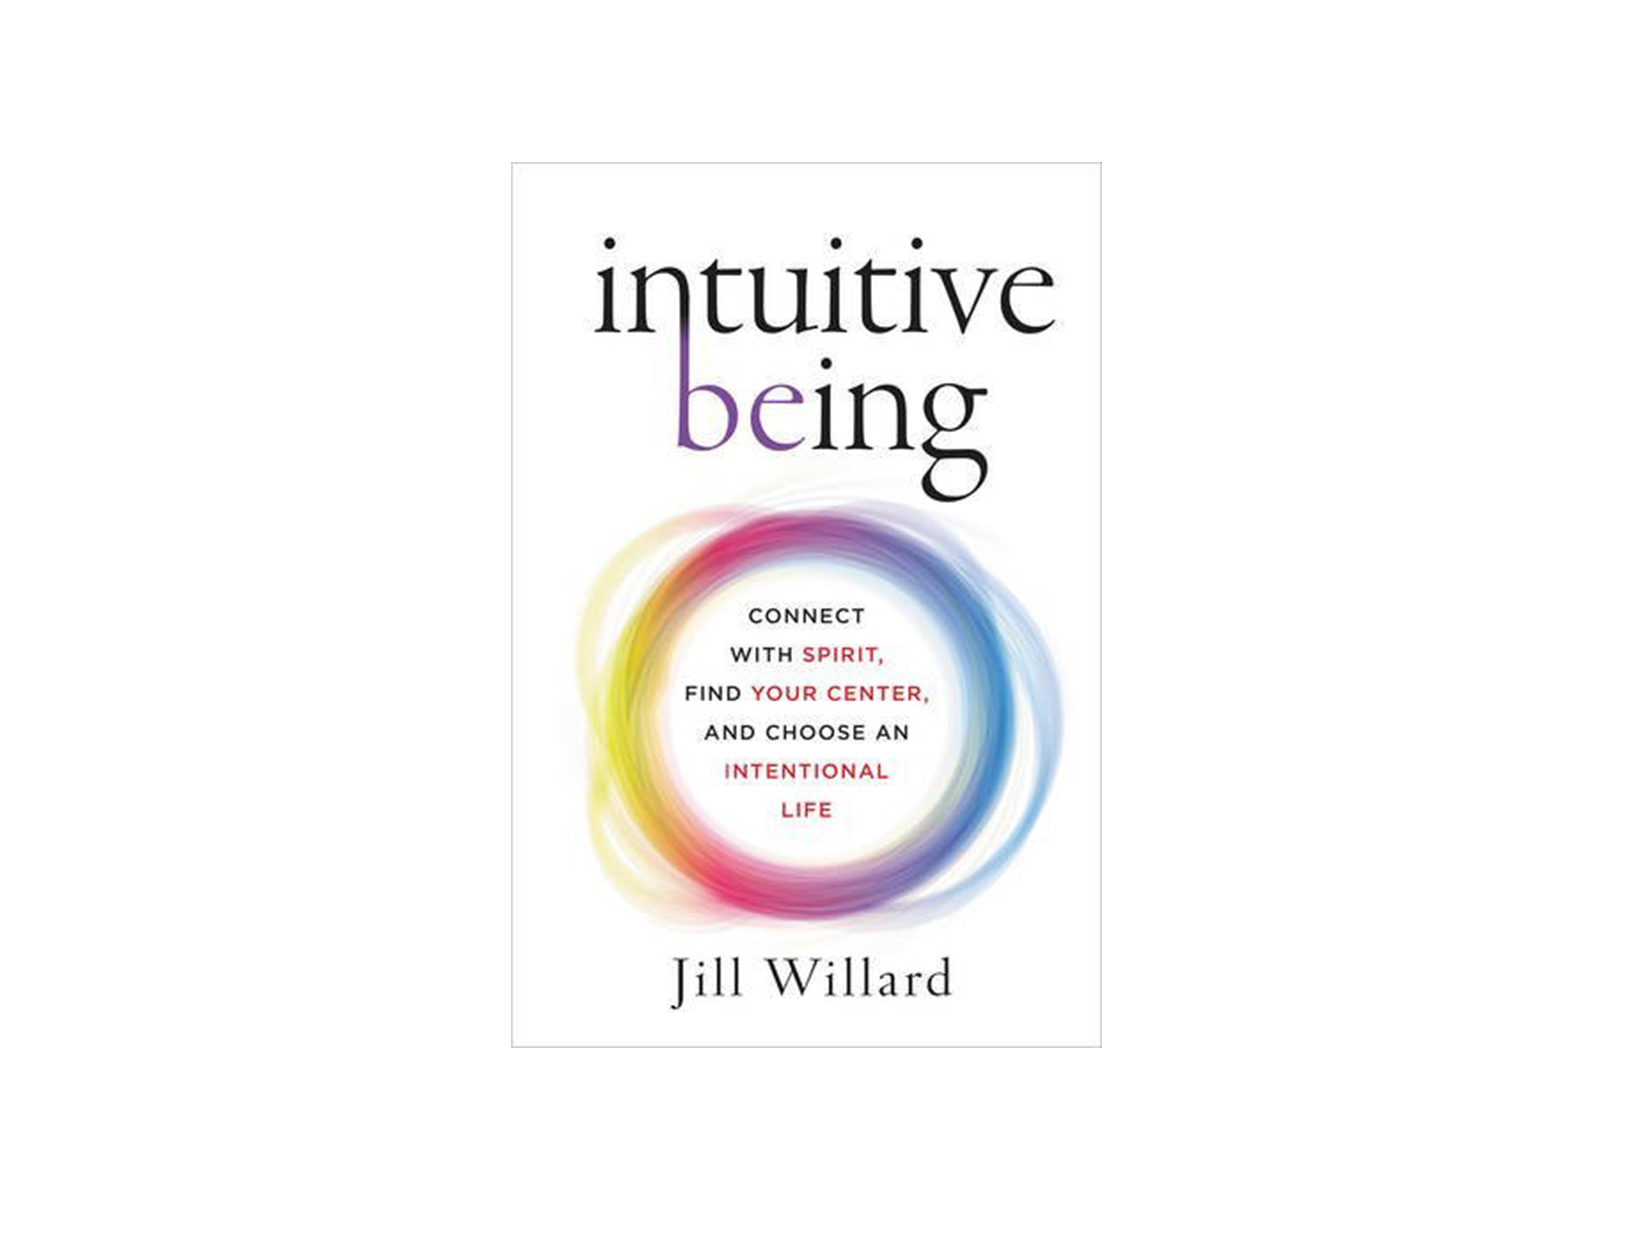 Intuitive Being by Jill Willard